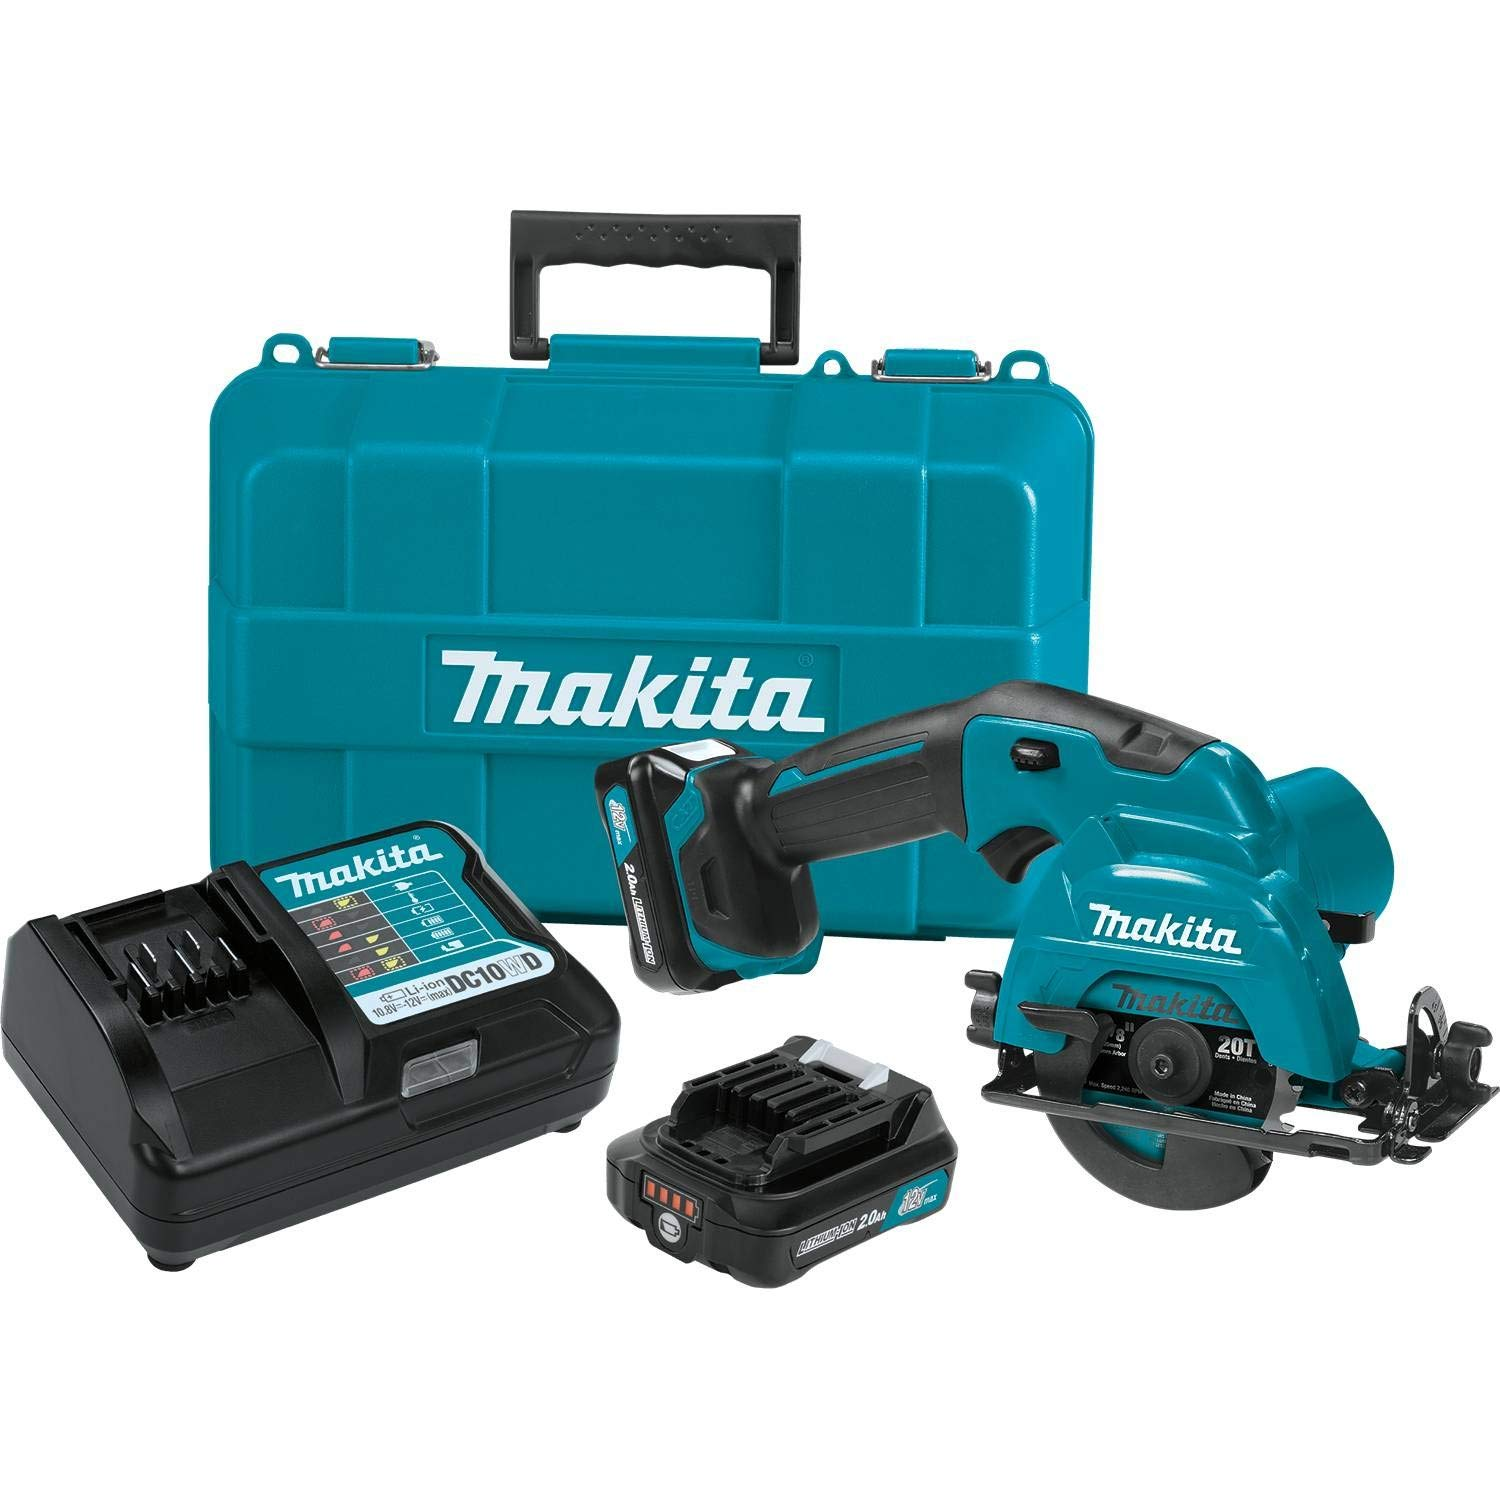 Makita SH02R1 12V Max CXT Lithium-Ion Cordless Circular Saw Kit, 3-3 8